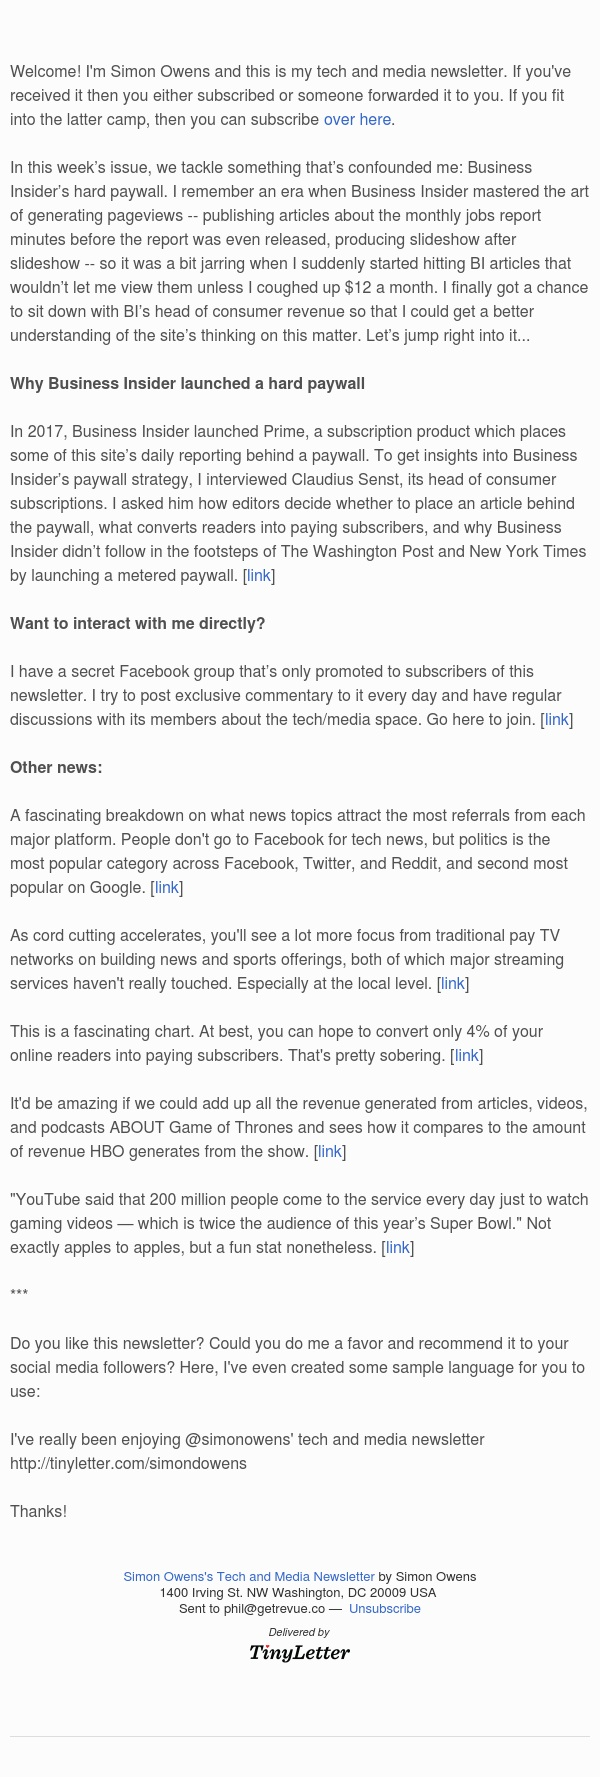 Why Business Insider launched a hard paywall